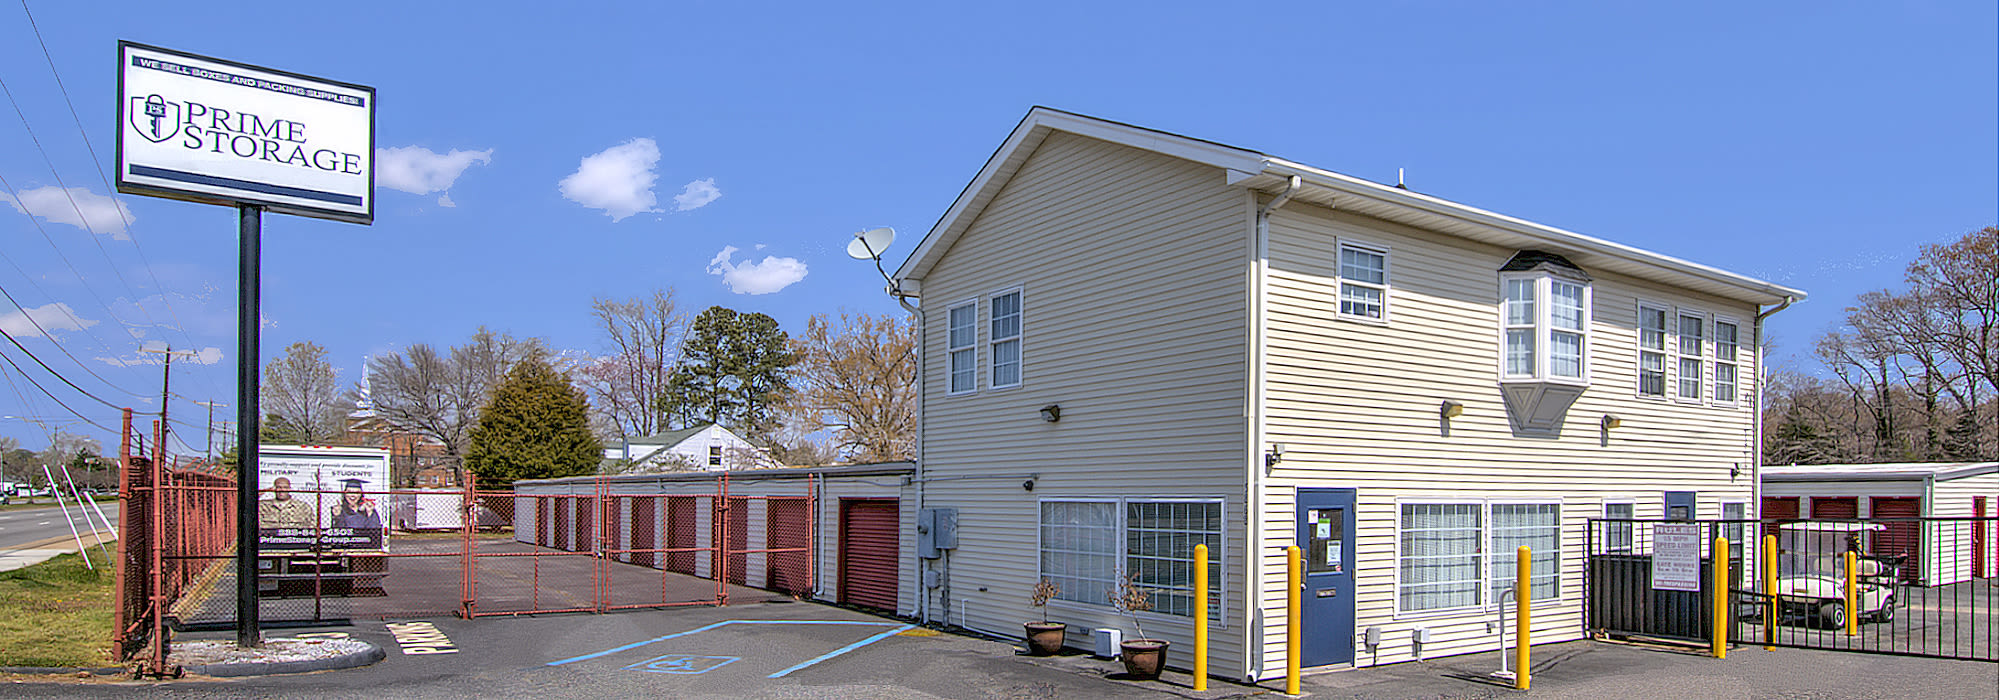 Prime Storage in Newport News, VA